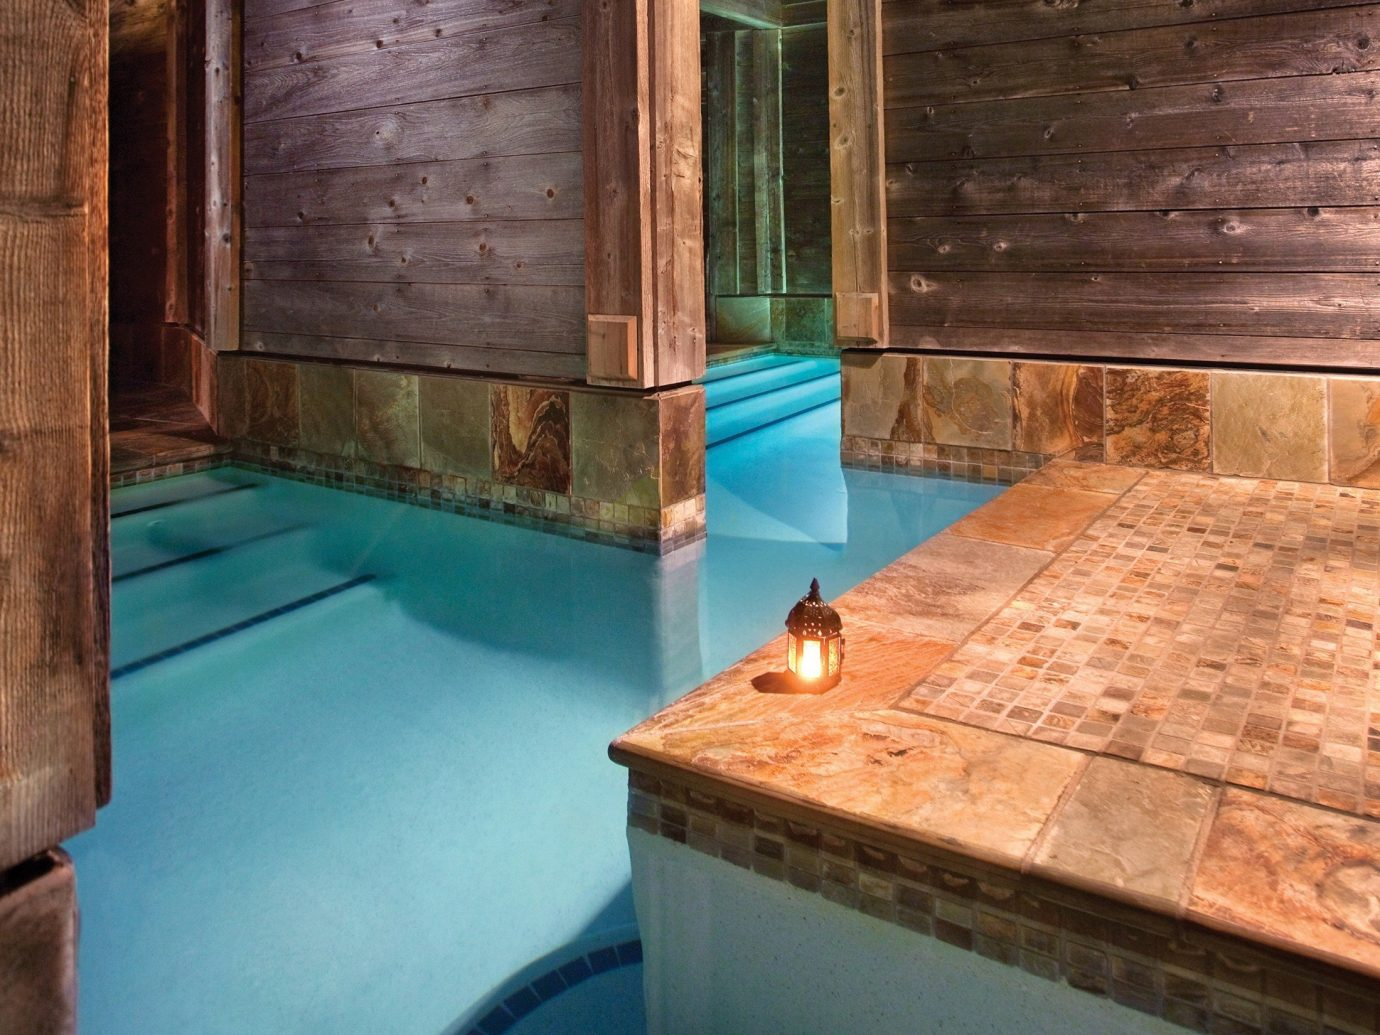 Hotels Offbeat indoor building swimming pool man made object room property floor wooden estate jacuzzi cottage wood